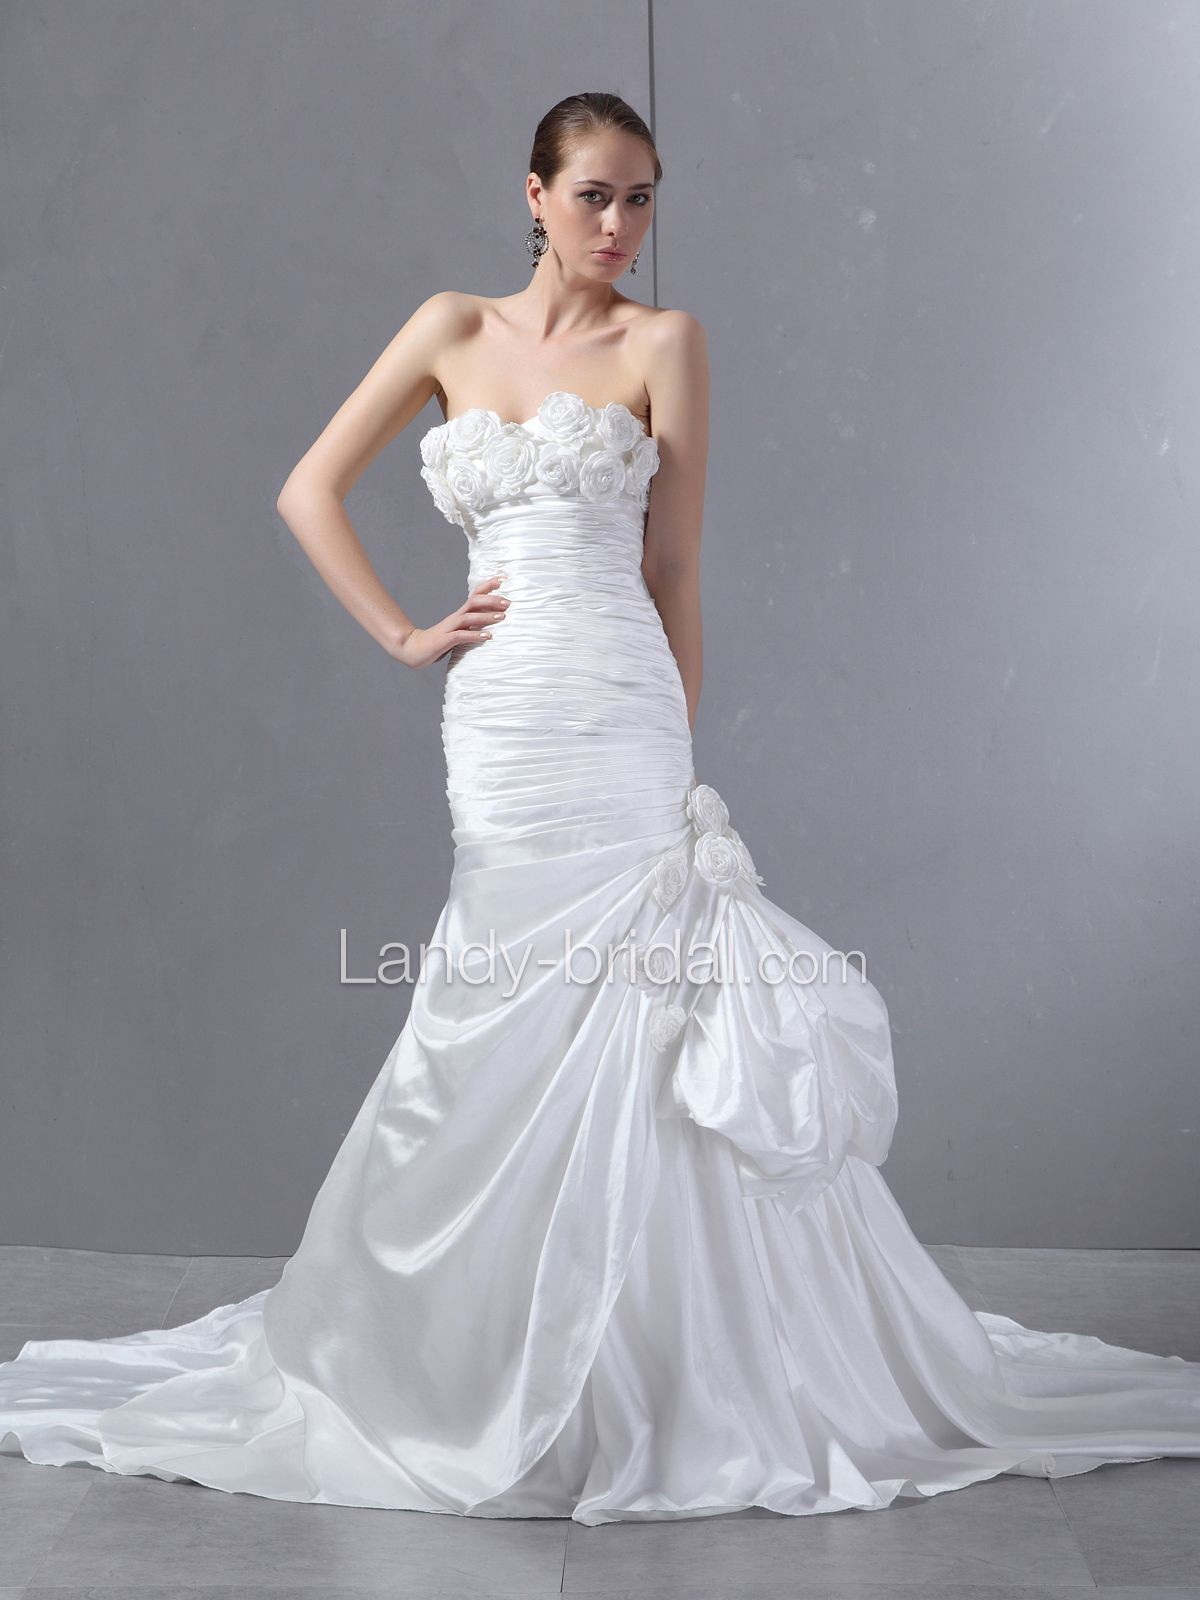 Enticing straps v neck over lace two double mermaid blue dress for bride mwd 208